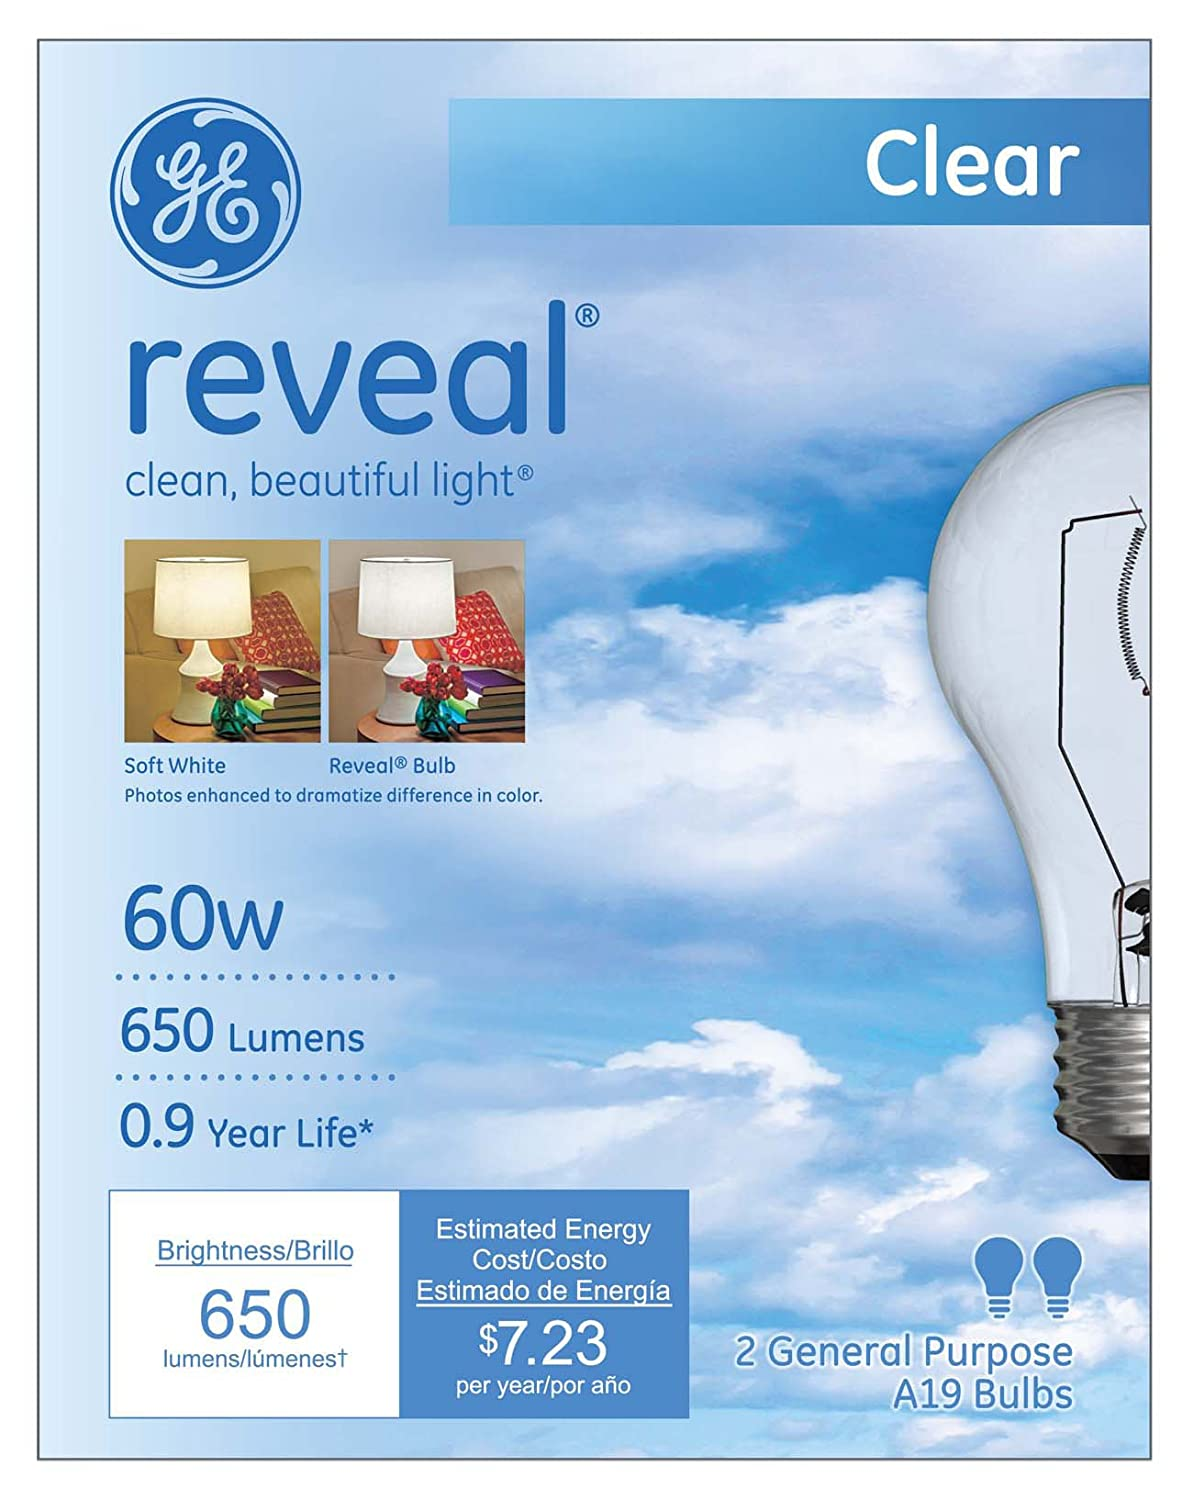 DLC 80 CRI UL Frosted GE 38257 Glass LED Tube Lamp Soft White 3000K Dimmable General Electric 70,000 Year Lifespan